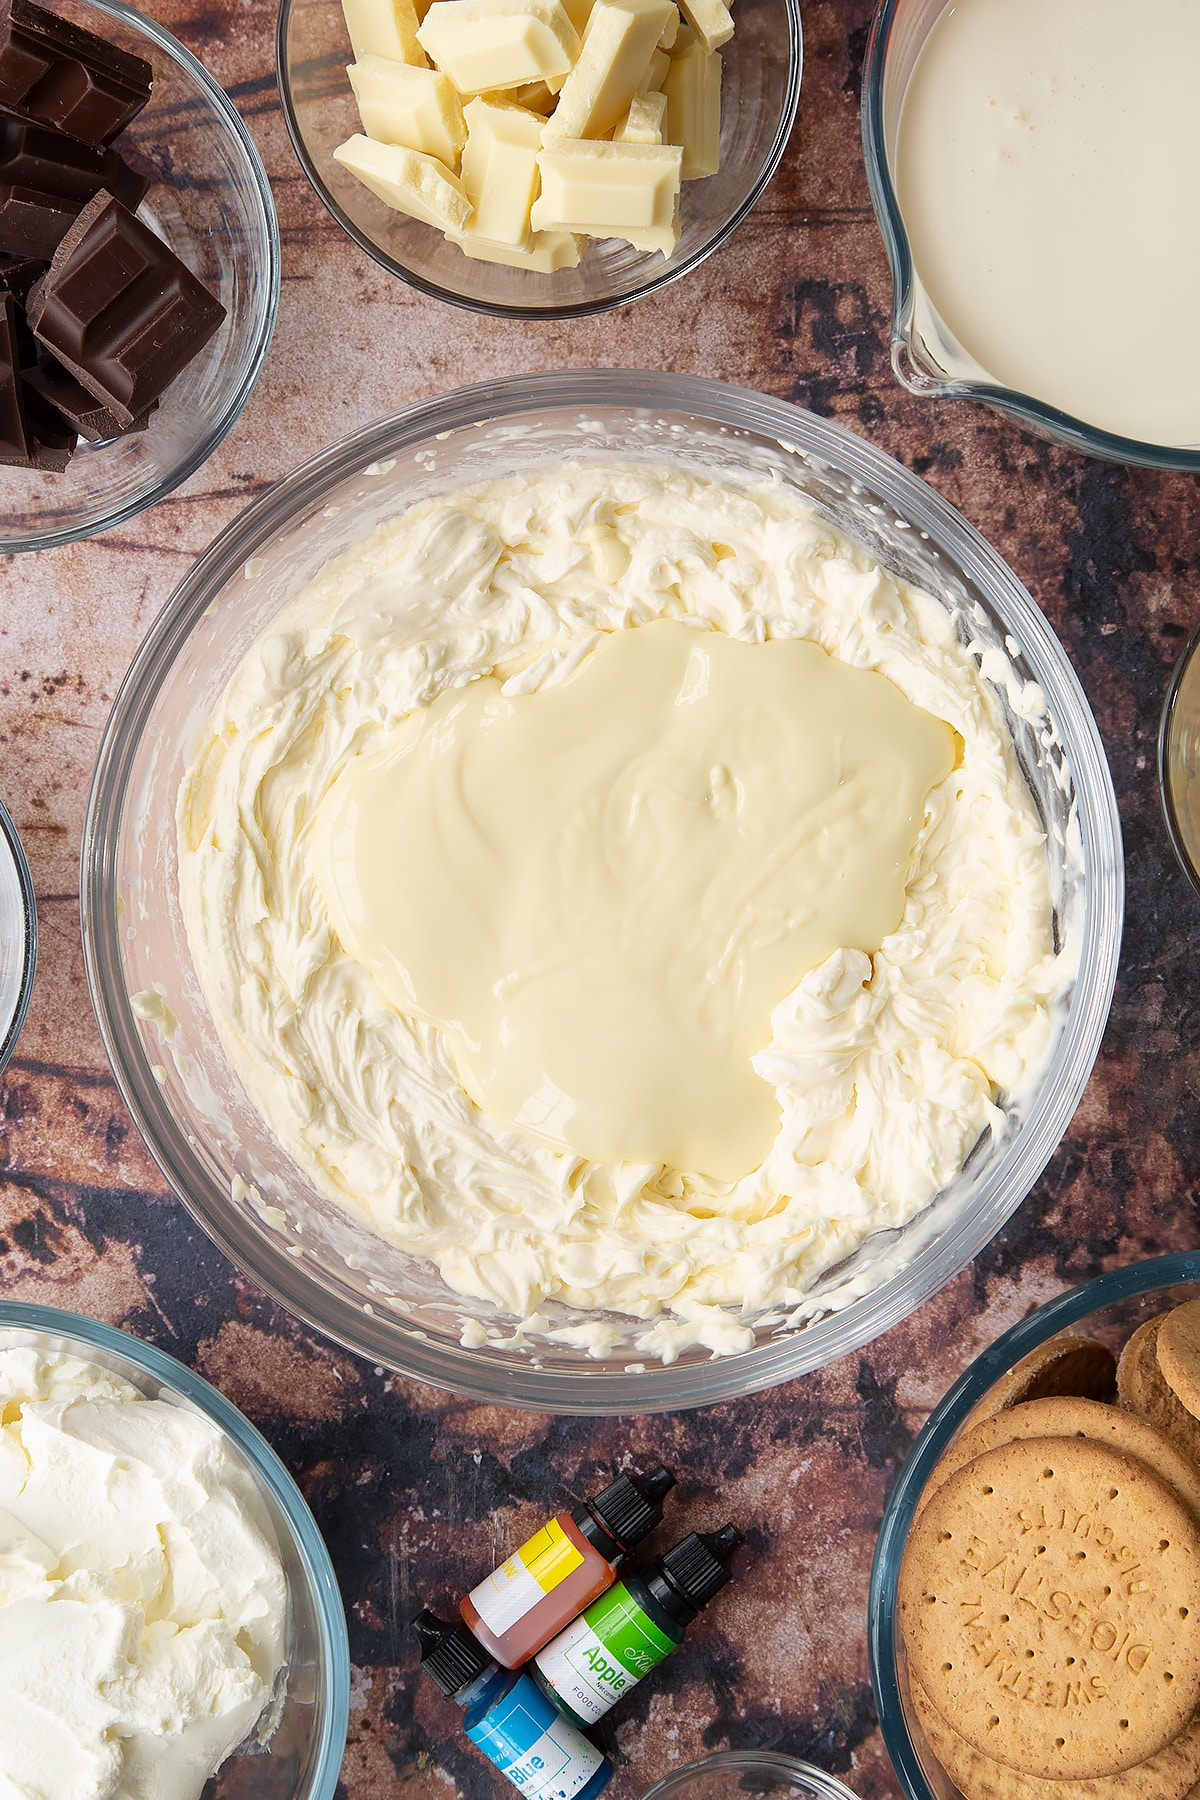 Double cream, cream cheese, peppermint extract and sugar, whisked together in a glass bowl with melted white chocolate on top. Ingredients to make no bake mint cheesecake surround the bowl.